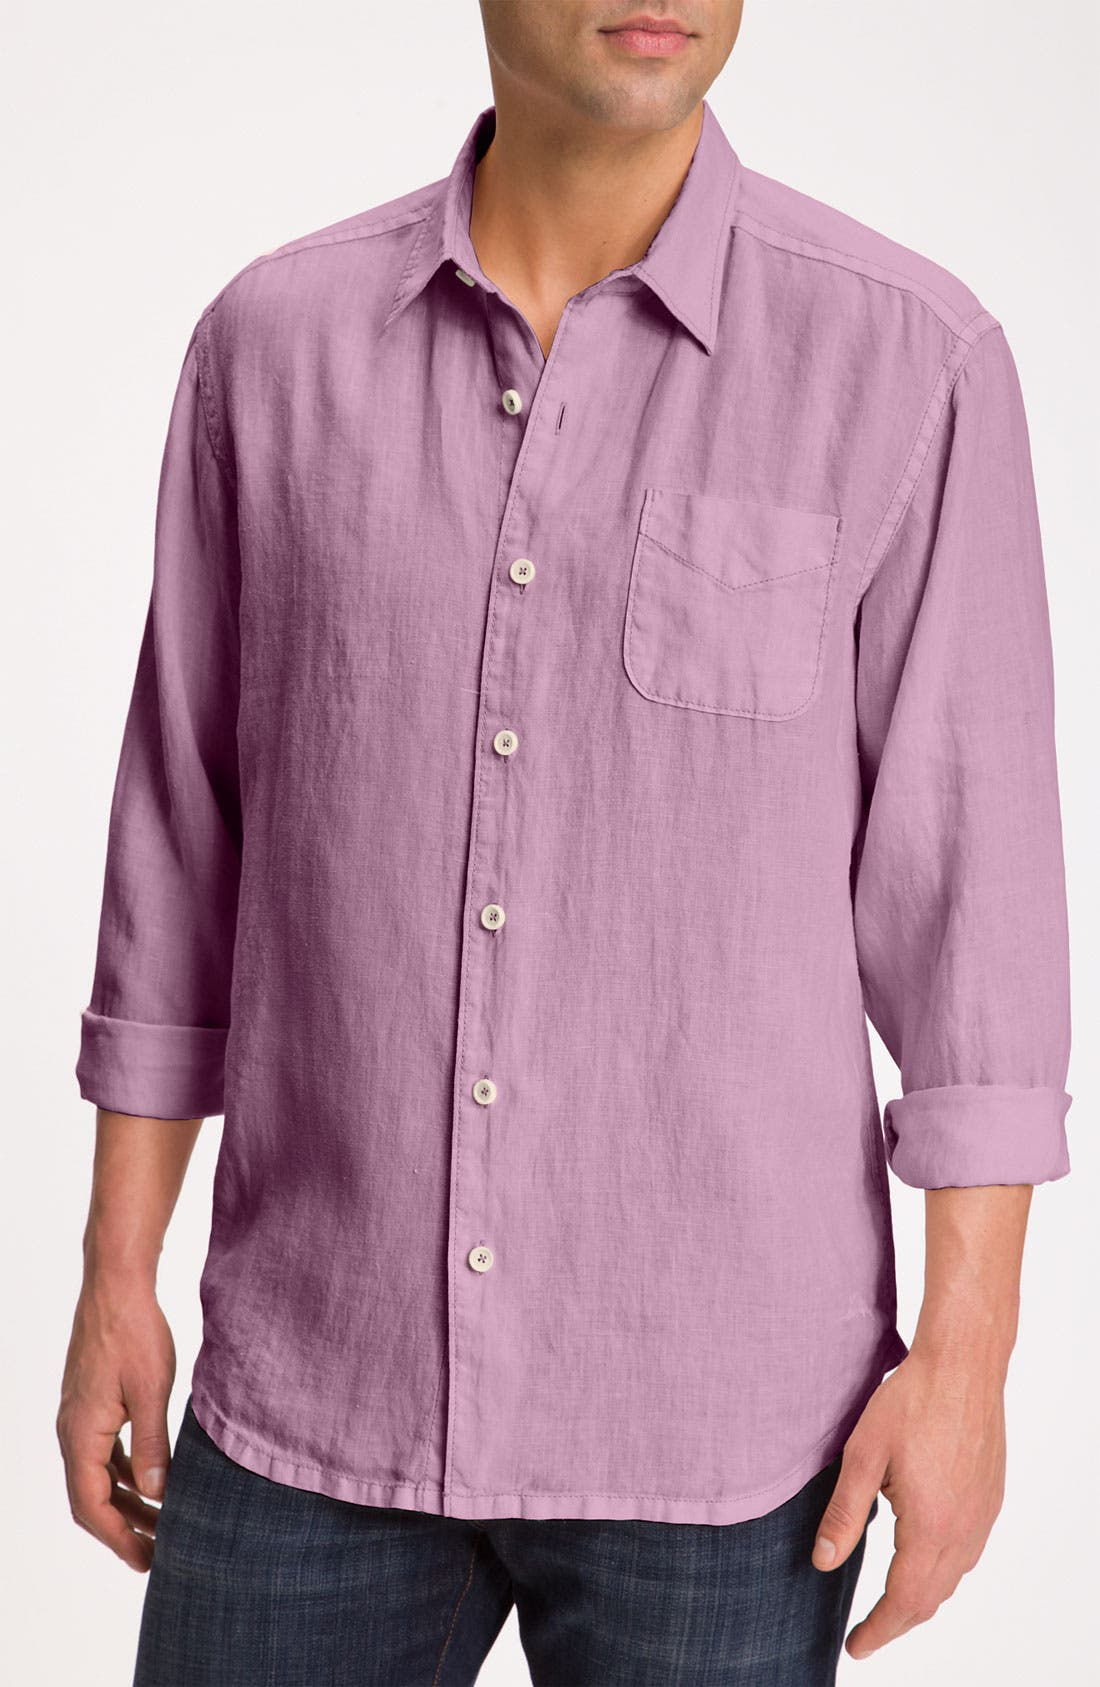 Alternate Image 1 Selected - Tommy Bahama 'Beachy Breezer' Linen Sport Shirt